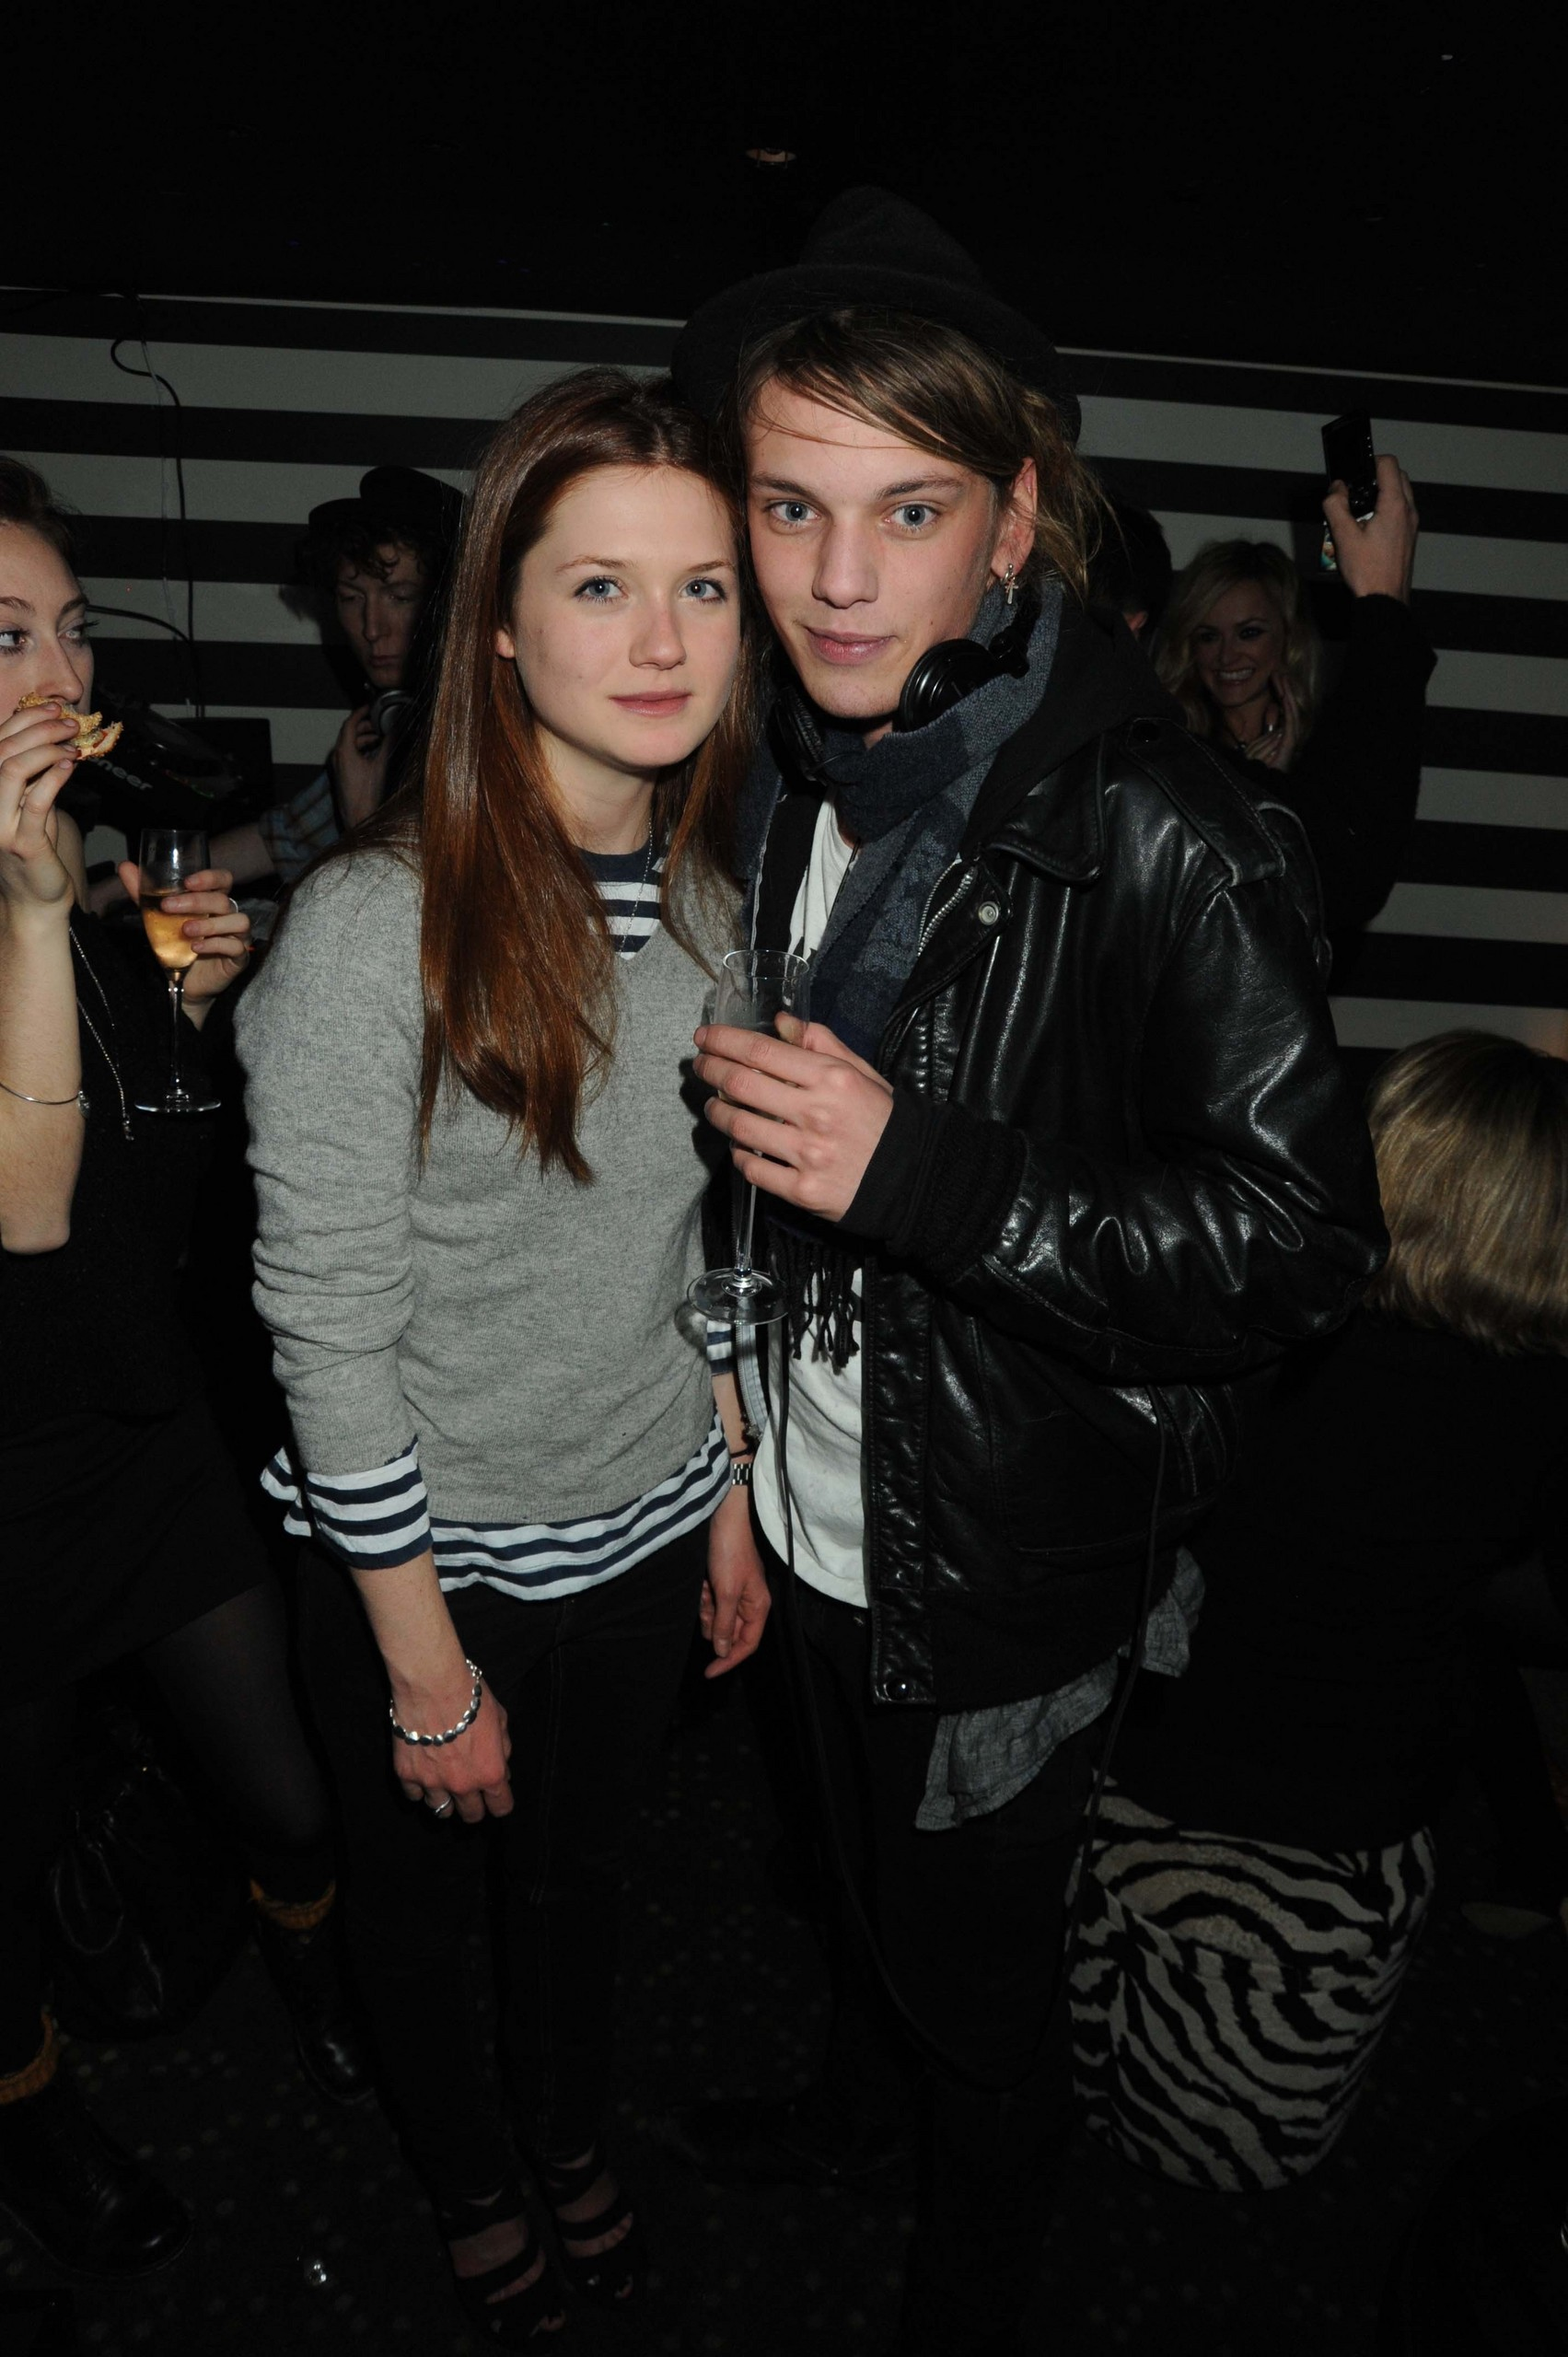 http://www.theplace.ru/archive/jamie_campbell_bower/img/Erin_Wasson_s_Maybel.jpg